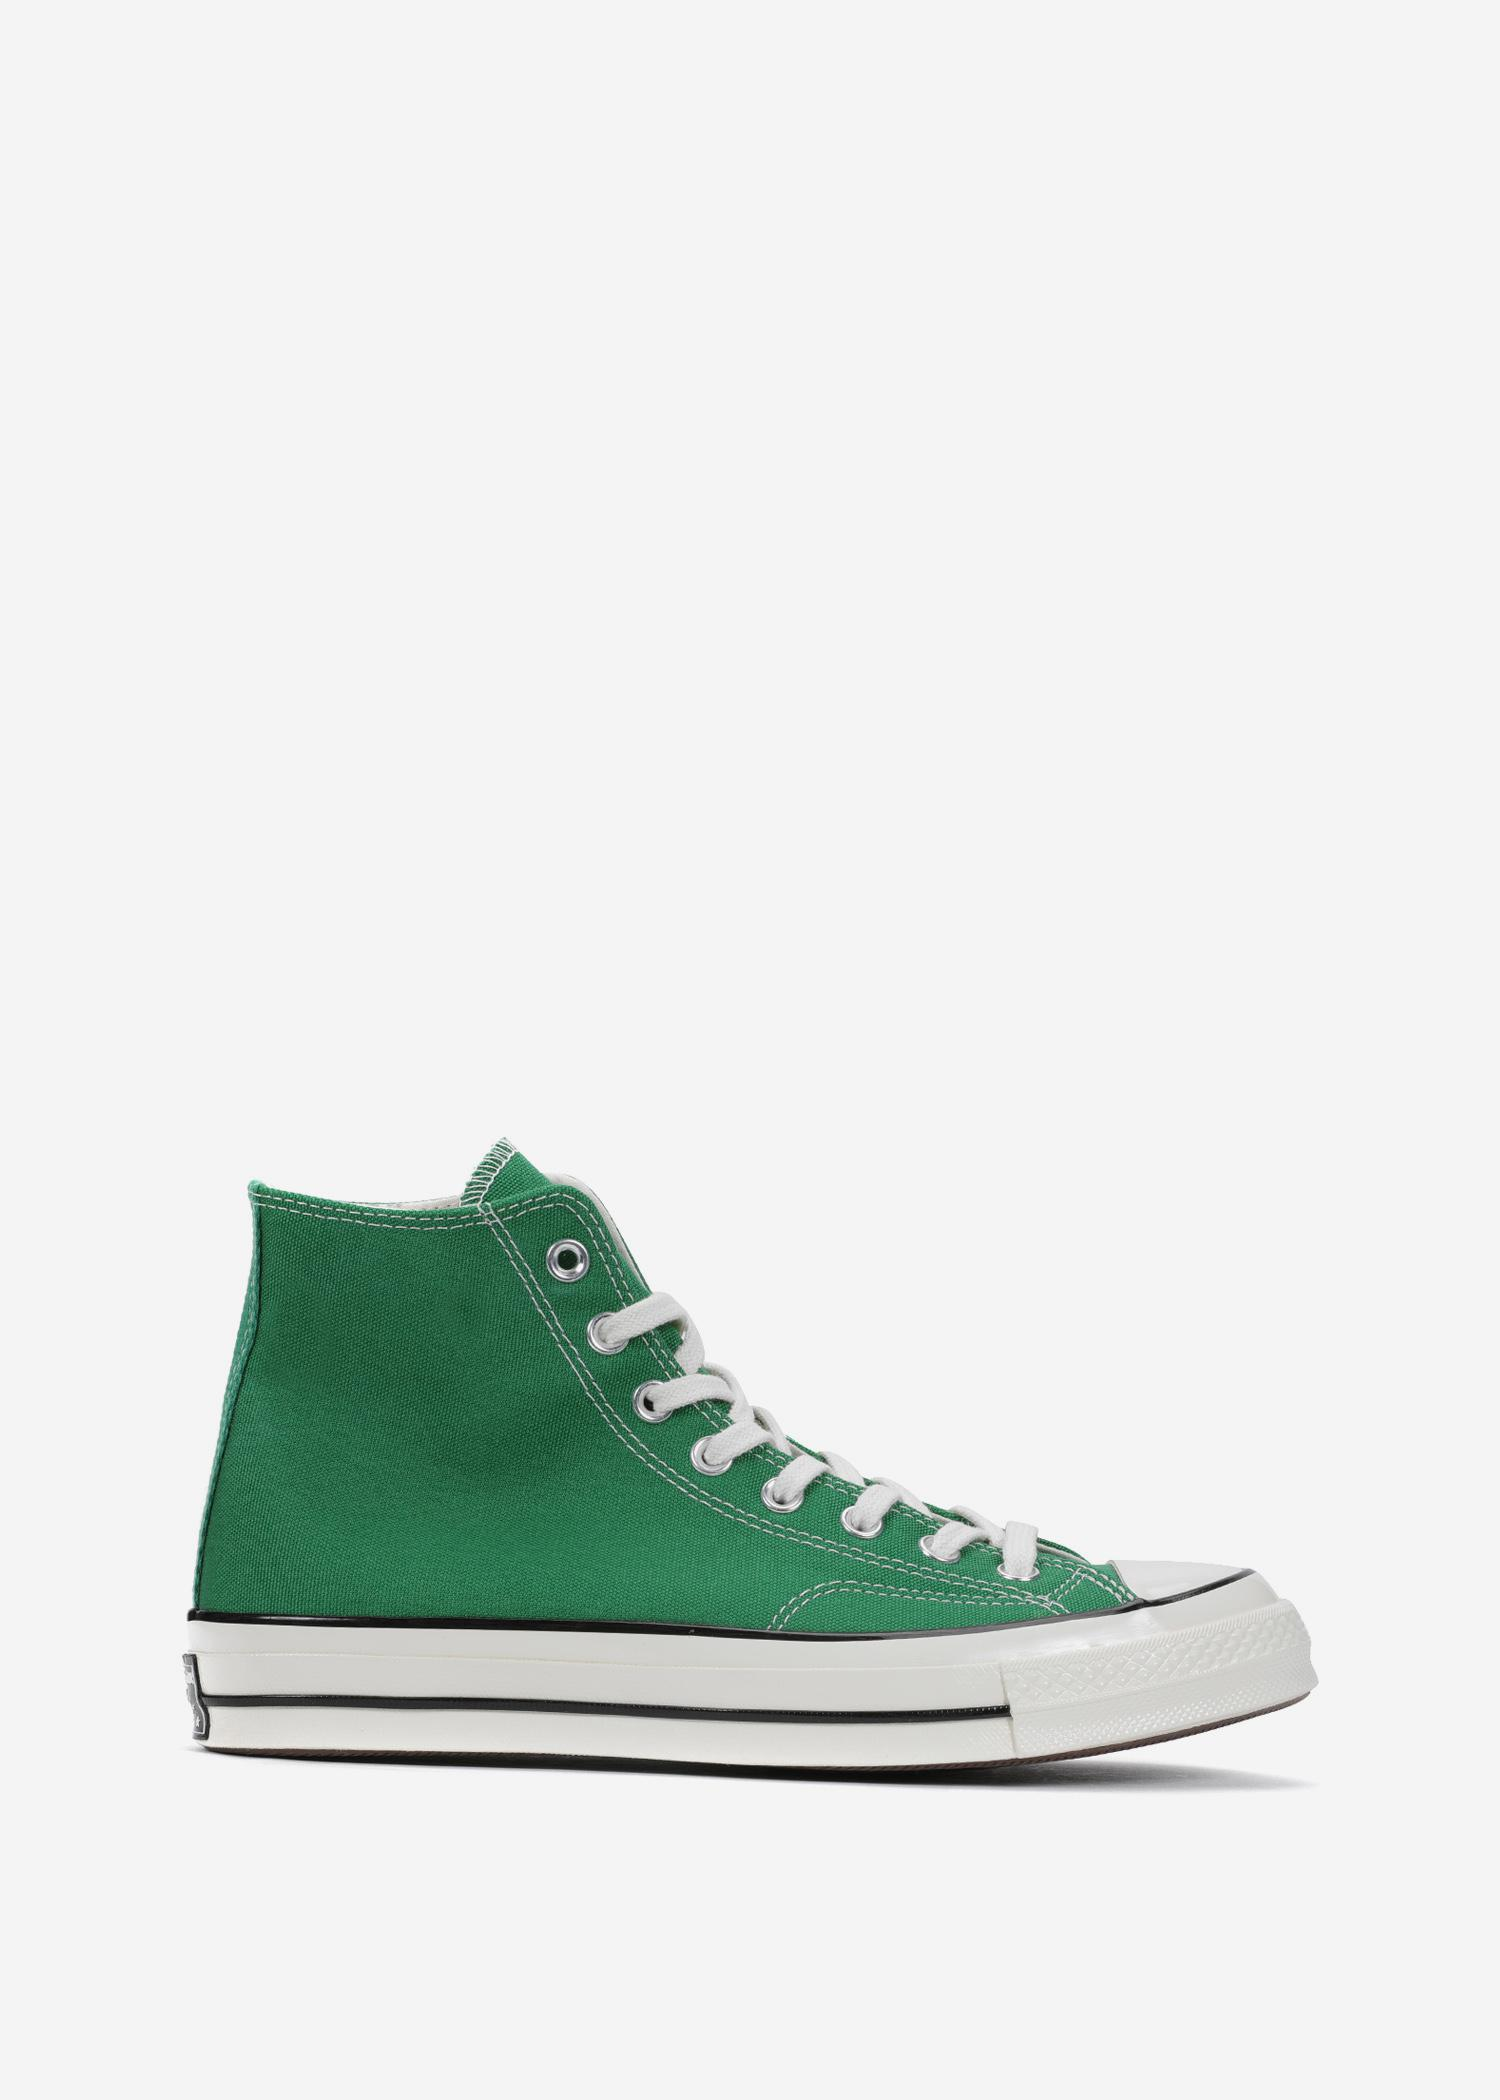 0568a309d16c93 Lyst - Converse Chuck Taylor All Star  70 Hi in Green